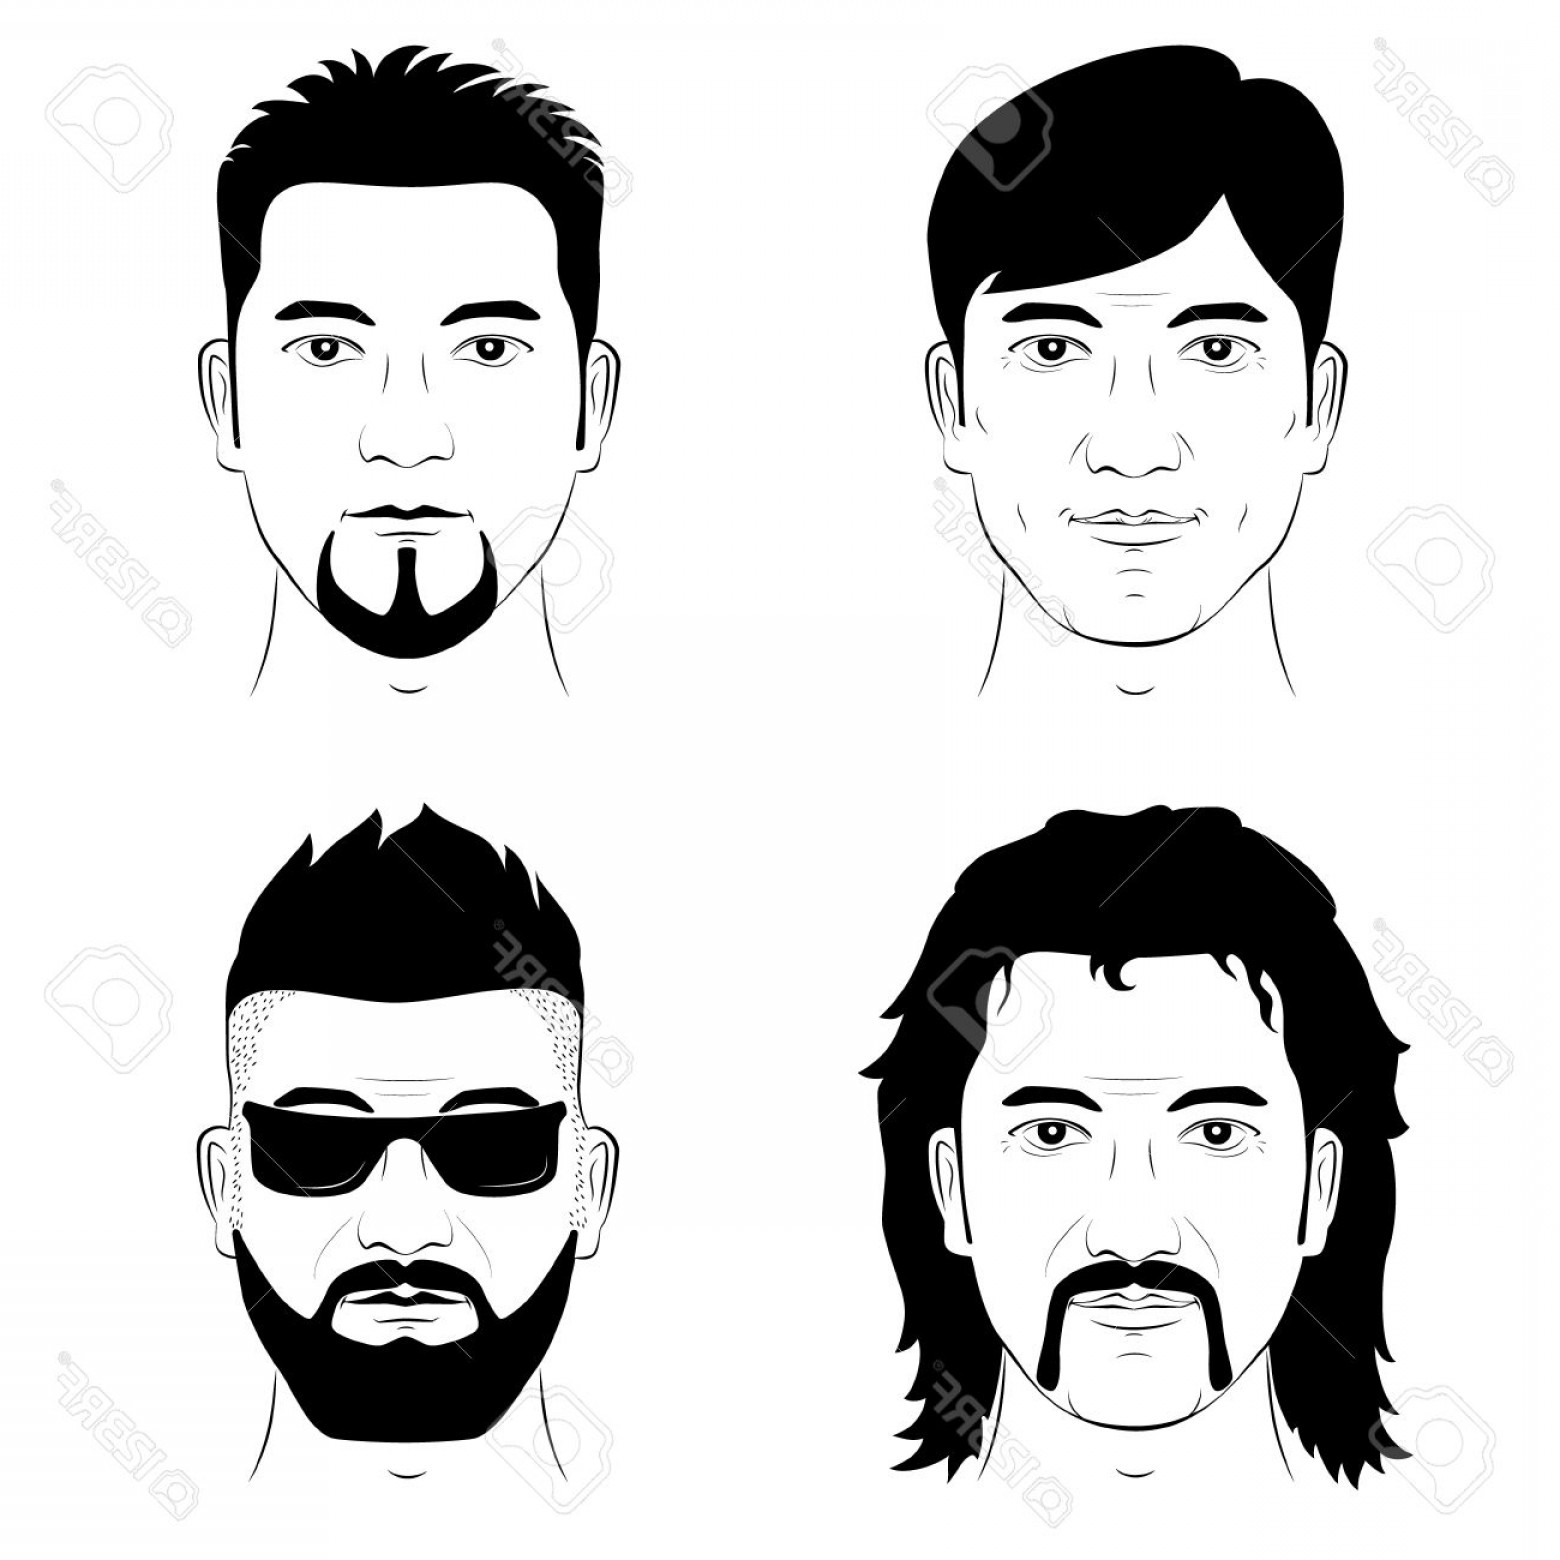 Mustache Face Vector: Photostock Vector A Set Of Drawing Human Faces With Different Hairstyles Mustache And Beard Vector Man Portrait